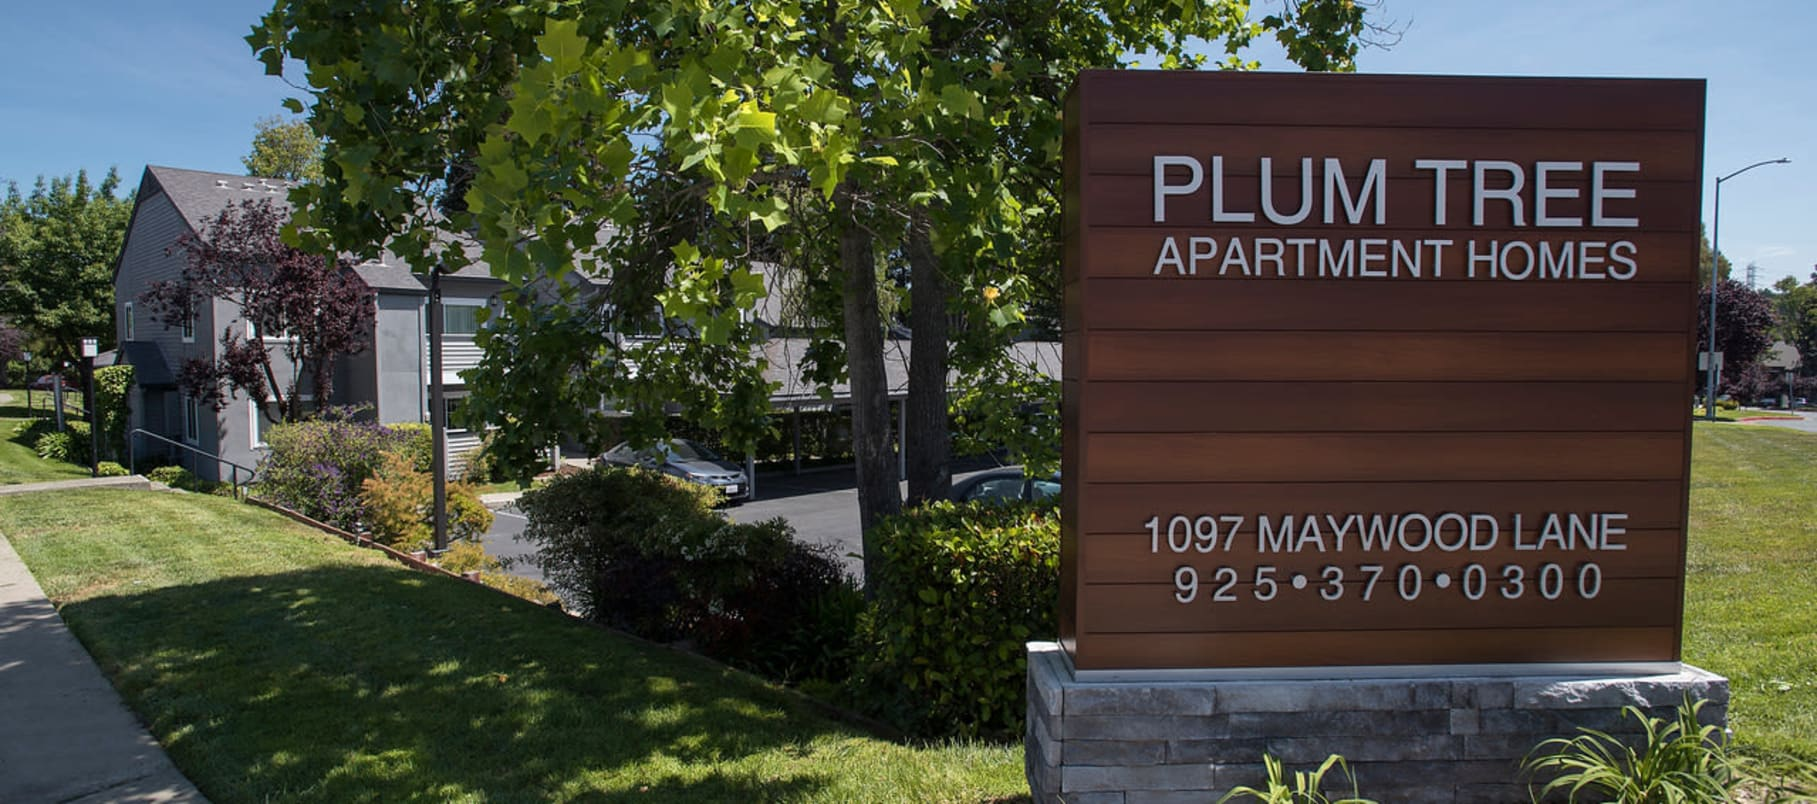 Signage outside of Plum Tree Apartment Homes in Martinez, California